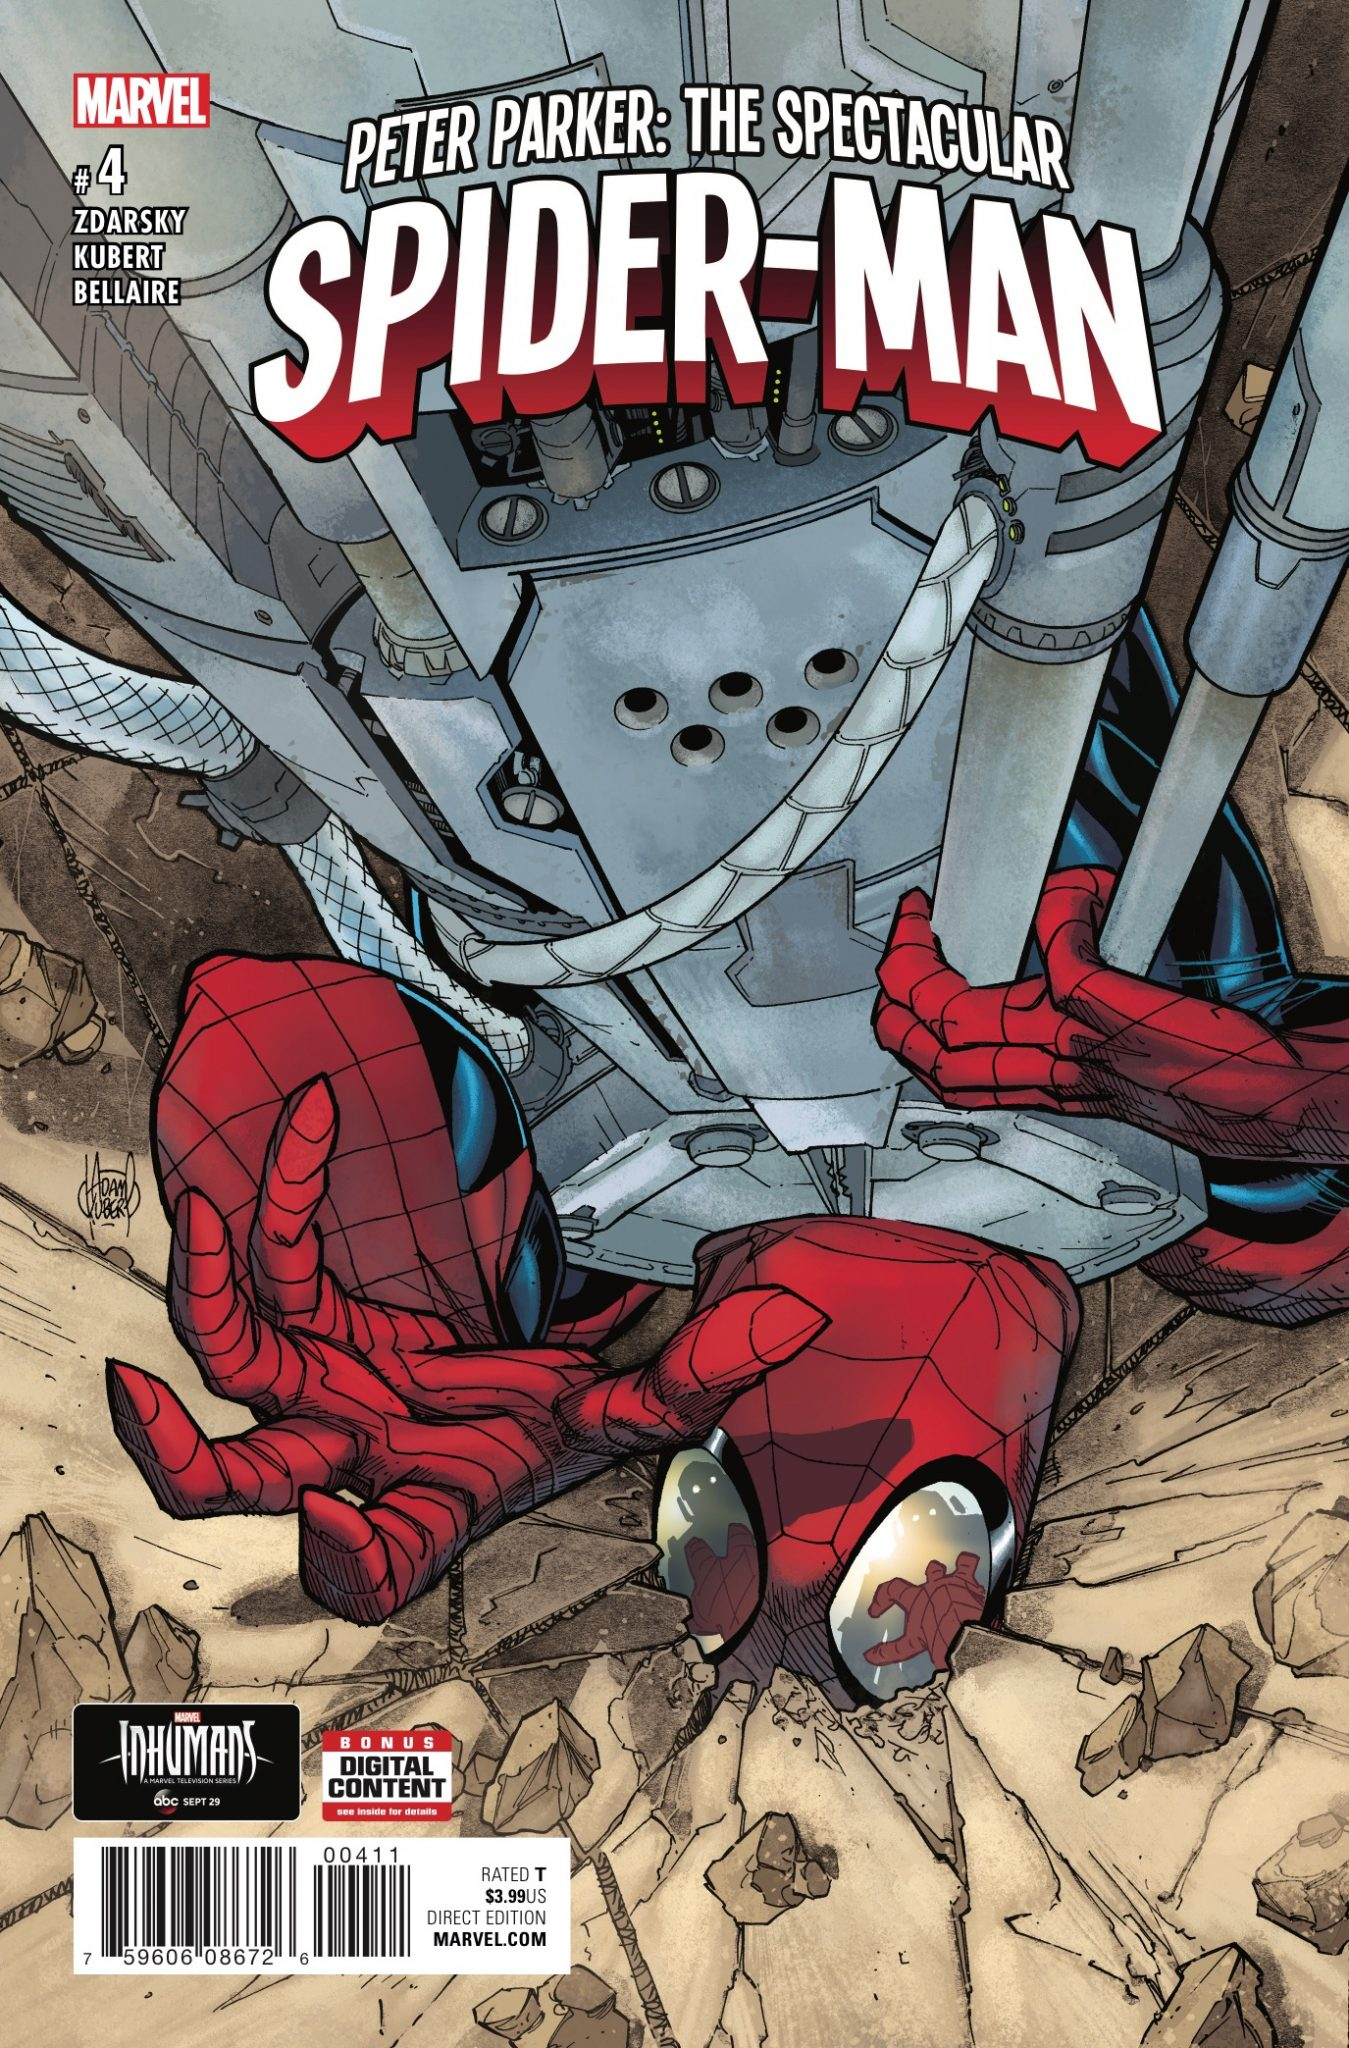 Marvel Preview: Peter Parker: The Spectacular Spider-Man #4